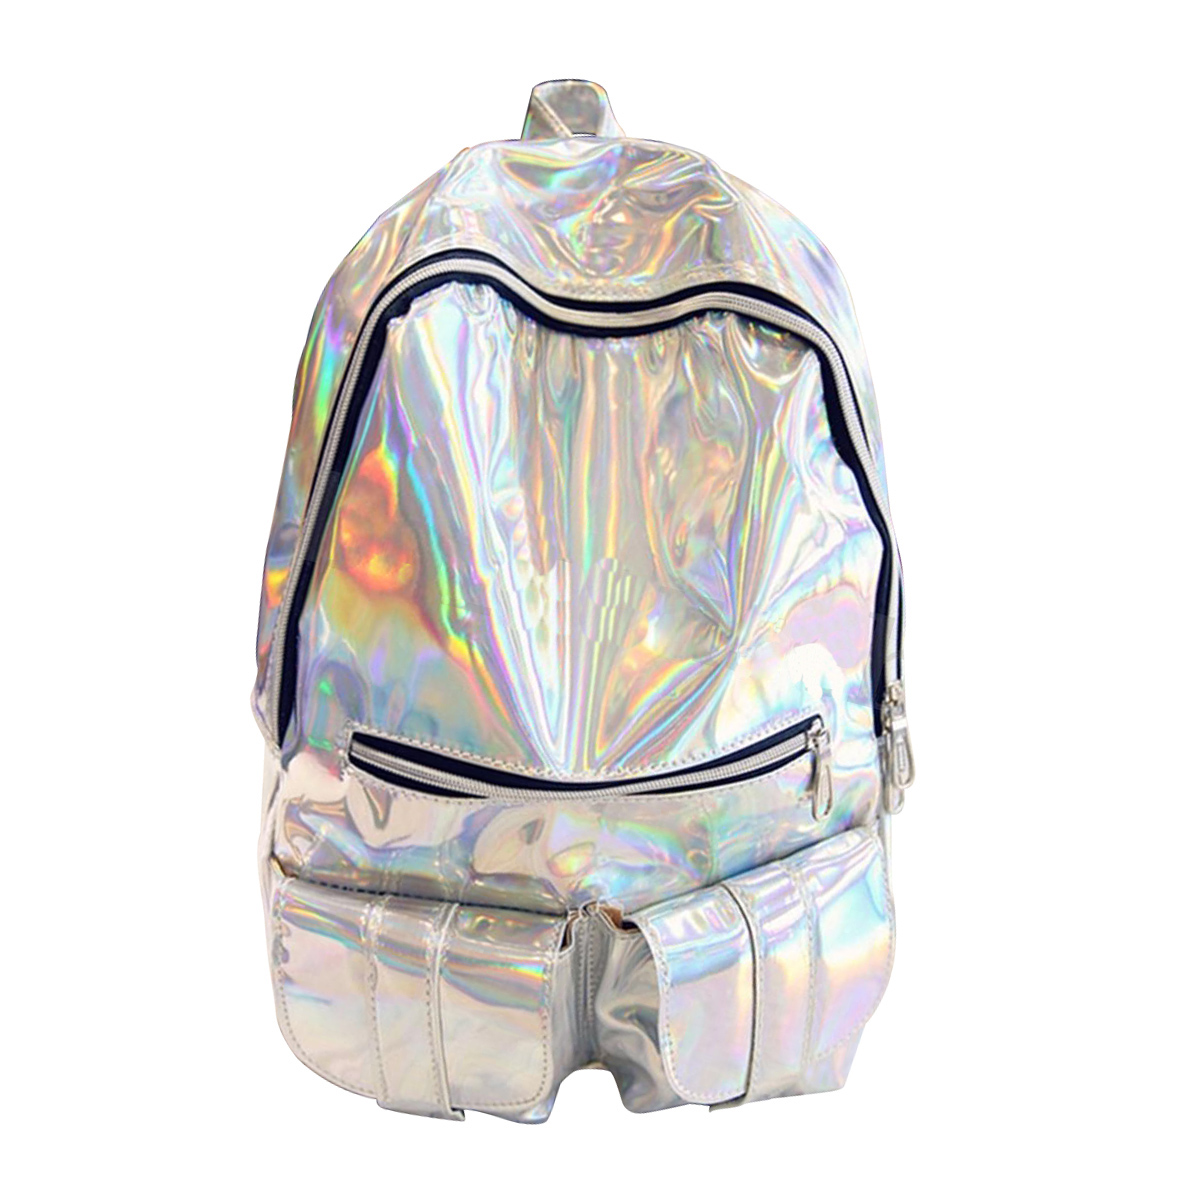 HOLOGRAPHIC Gammaray Hologram backpack Women Silver Hologram Laser Backpack men's Bag leather Holographic Backpack new f189010 second locked printhead dx7 solvent based uv print head for epson stylus pro b300 b310 b500 b510 b308 b508 b318 b518